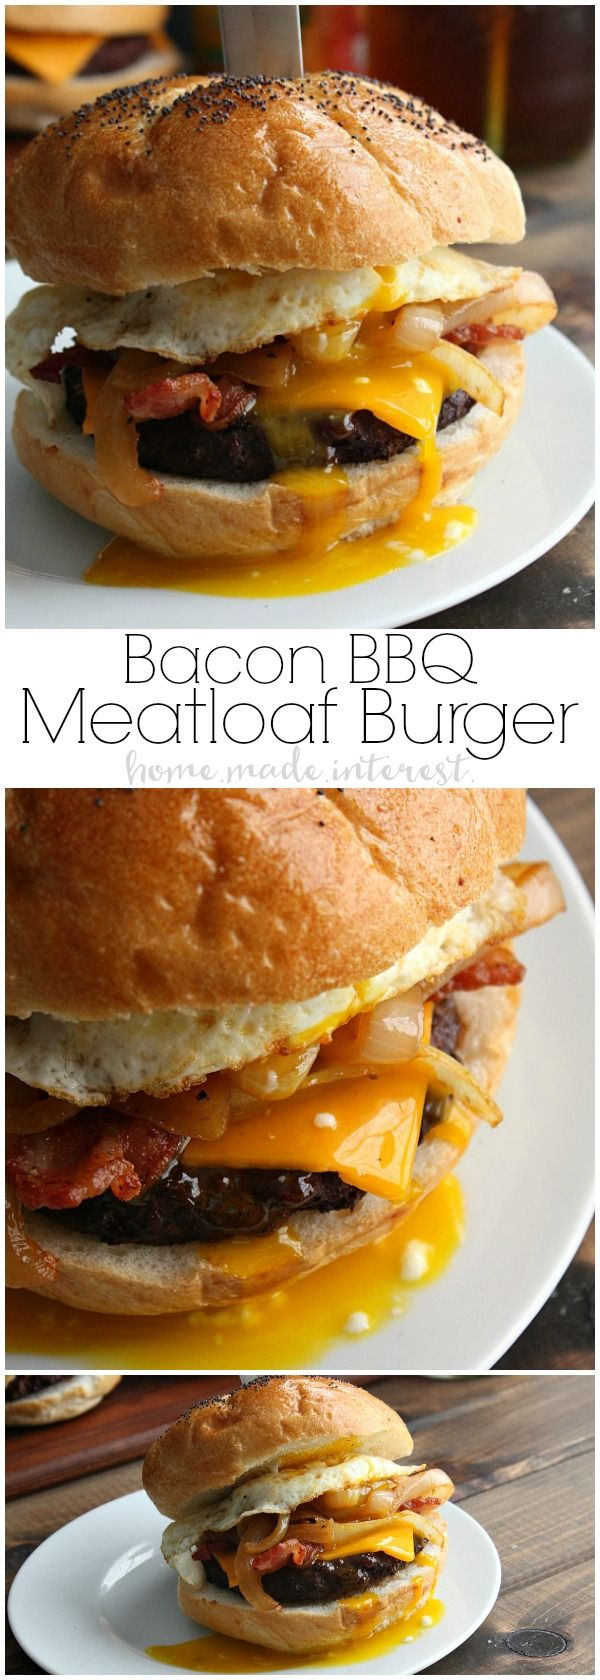 This grilled Bacon BBQ Meatloaf Burger is a tender and juicy burger twist on a classic comfort food, meatloaf! The burger patties are made with a delicious meatloaf base basted in BBQ sauce and topped with crispy bacon and a fried egg! An awesome grilled burger recipe that is perfect for summer, 4th of July, and Labor Day cookouts! BrightBites | AD